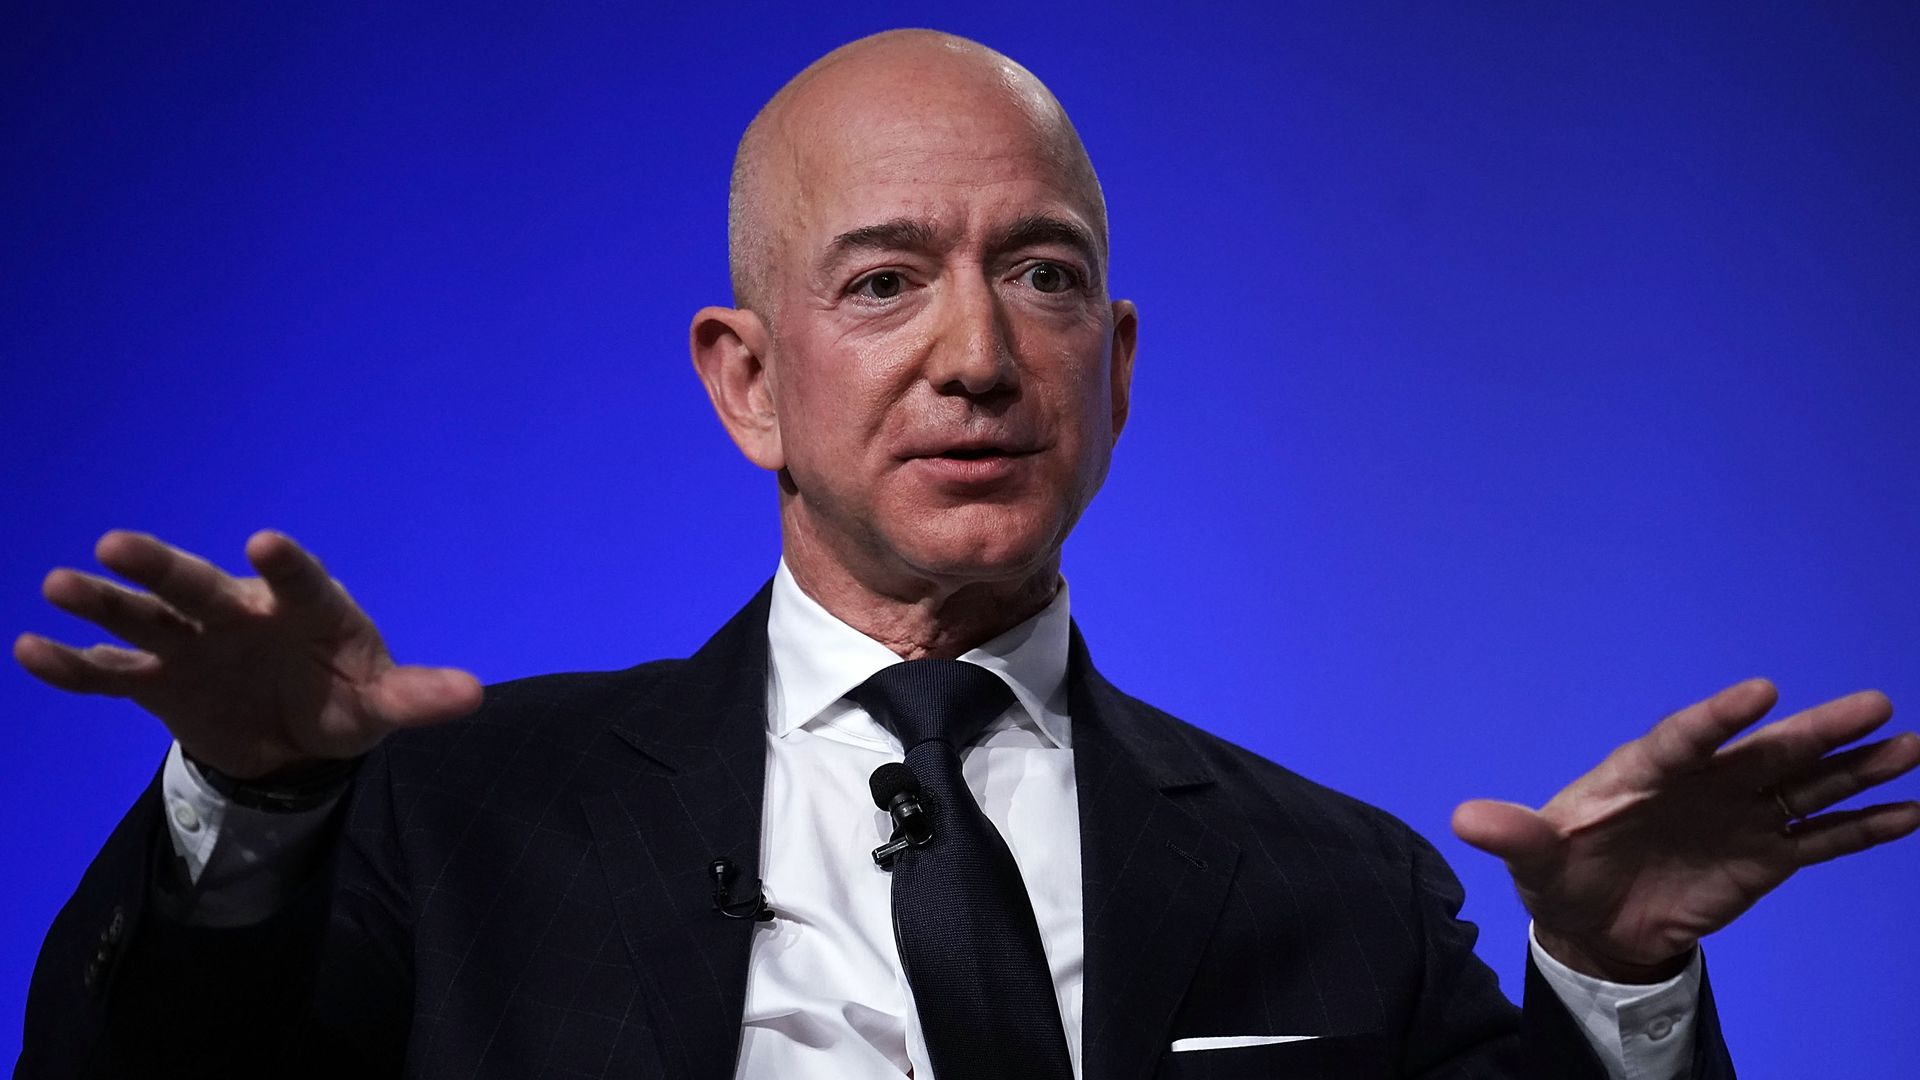 Amazon CEO Jeff Bezos gestures as he speaks